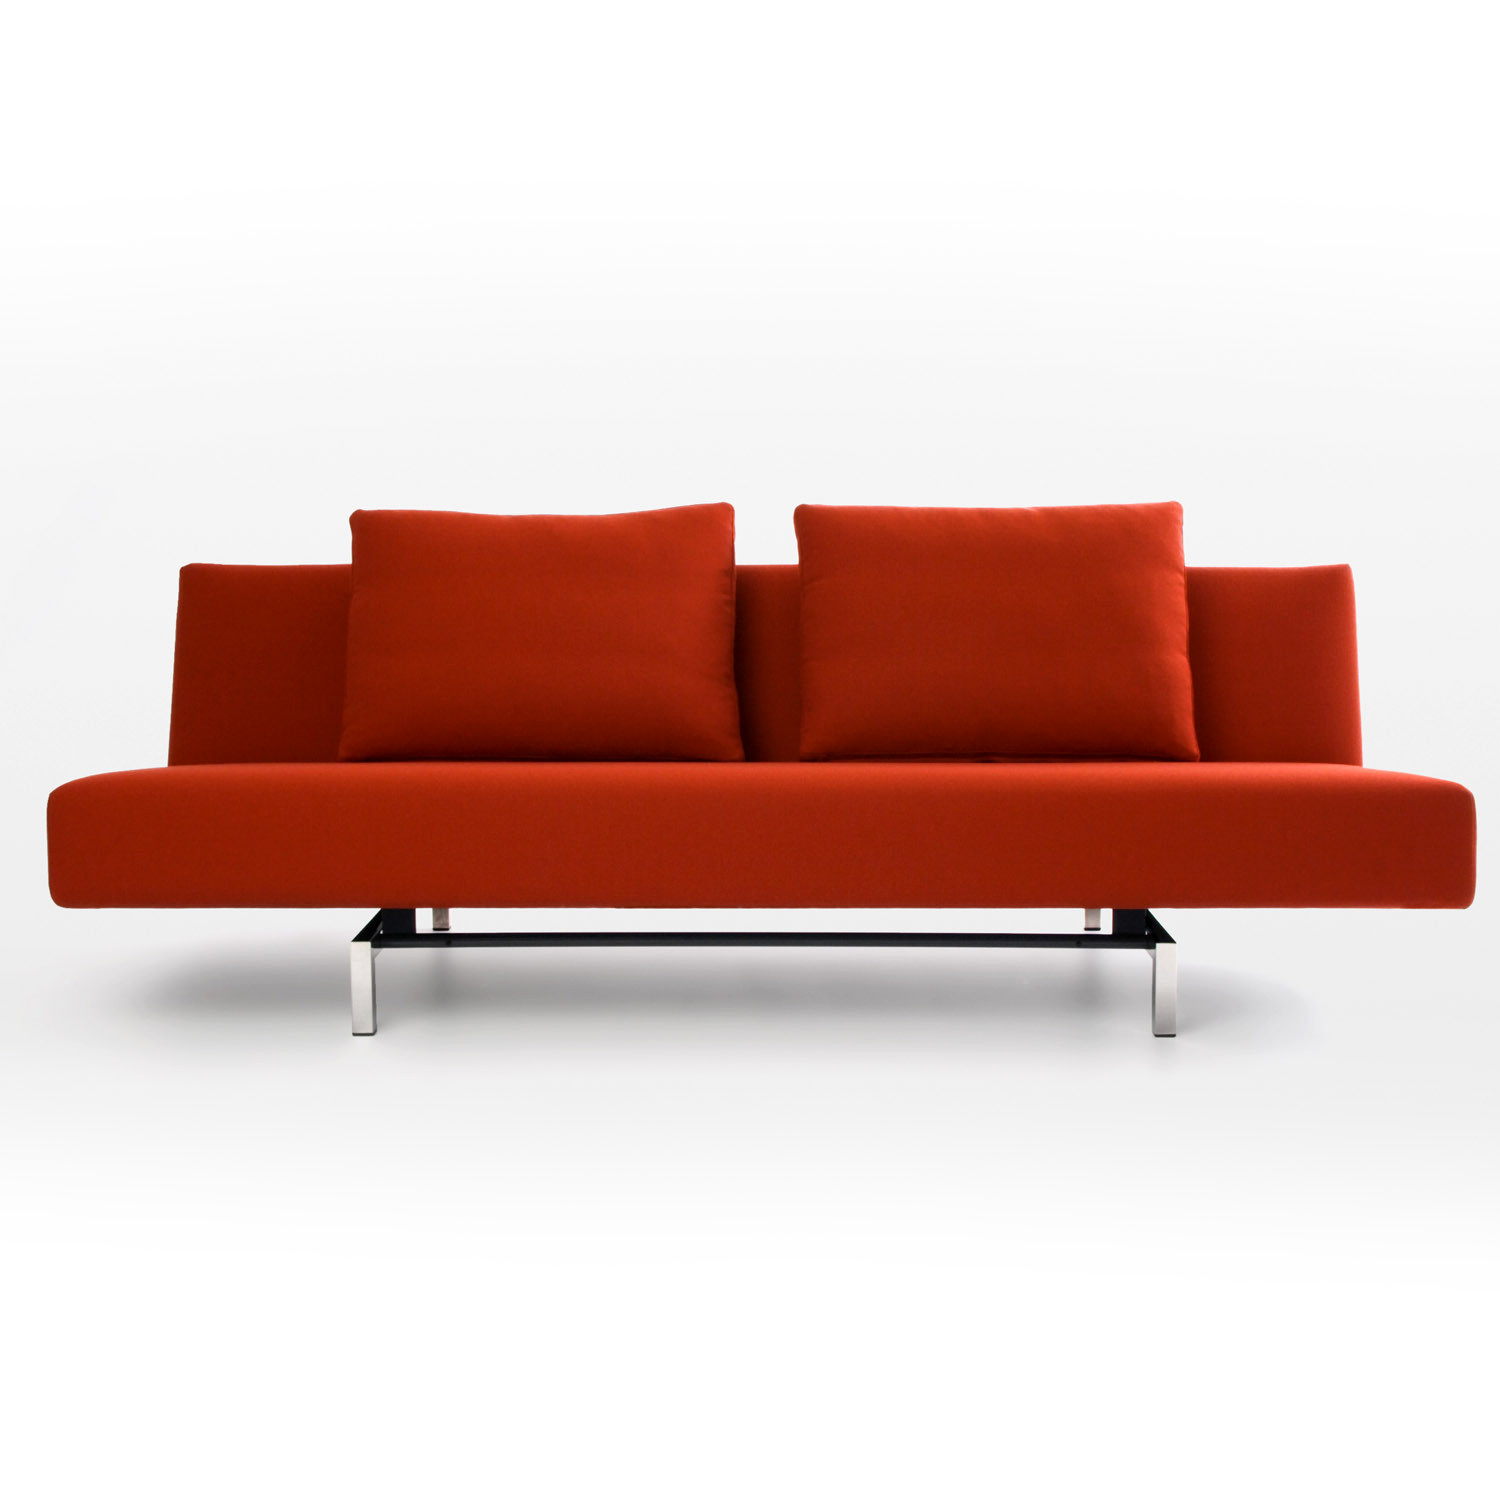 fufsack sofa sleeper lounge chair unique sofas online bed modern modular and chaise apres